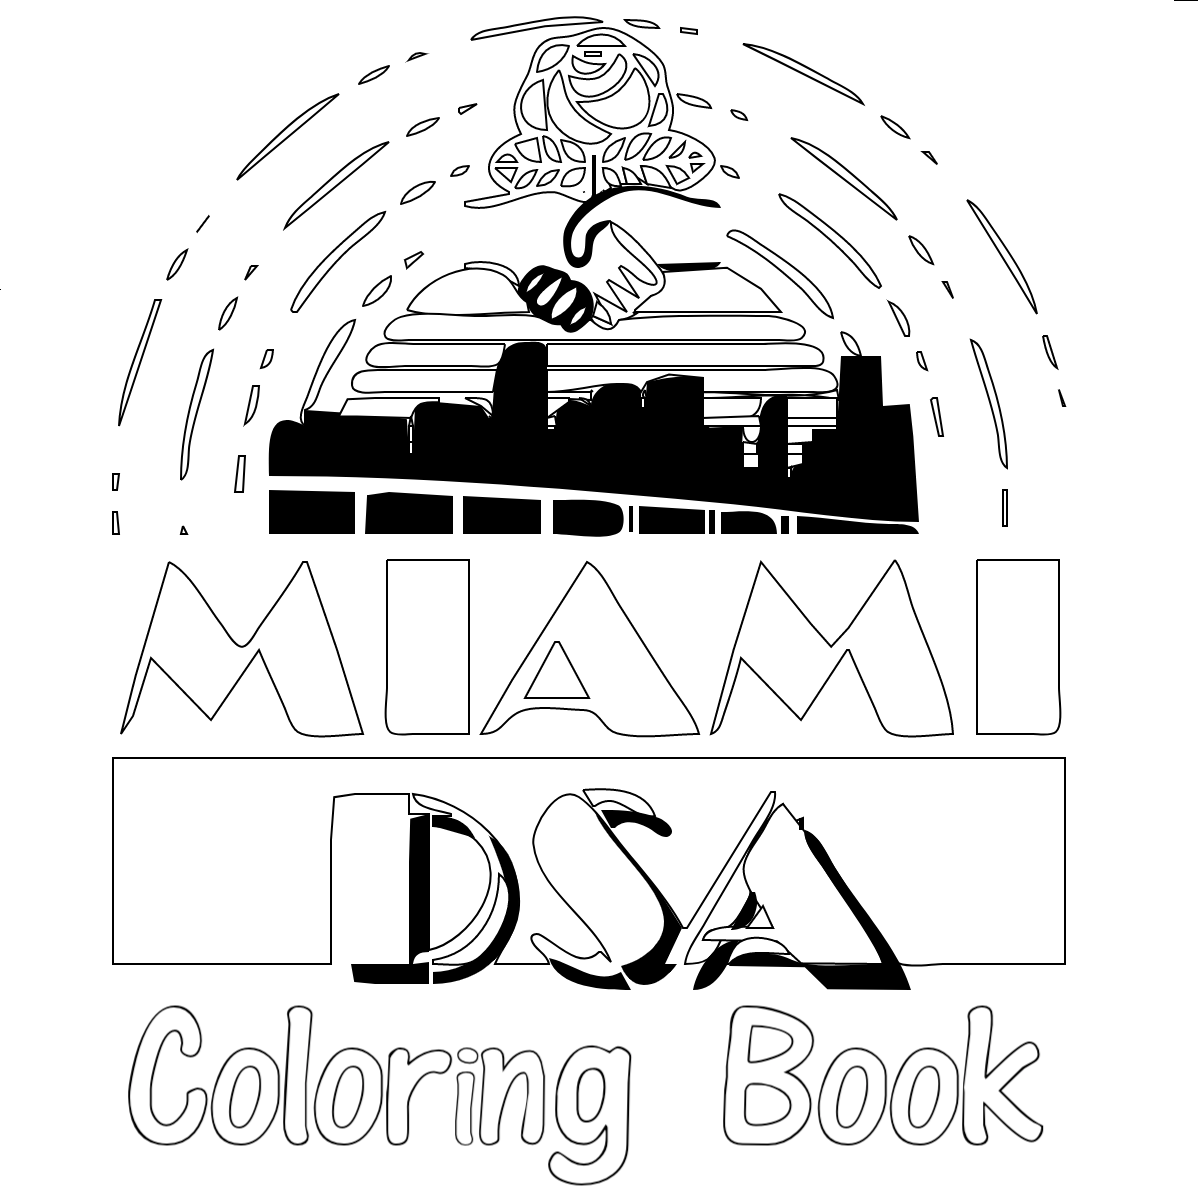 Coloring Book/Libro Para Colorear